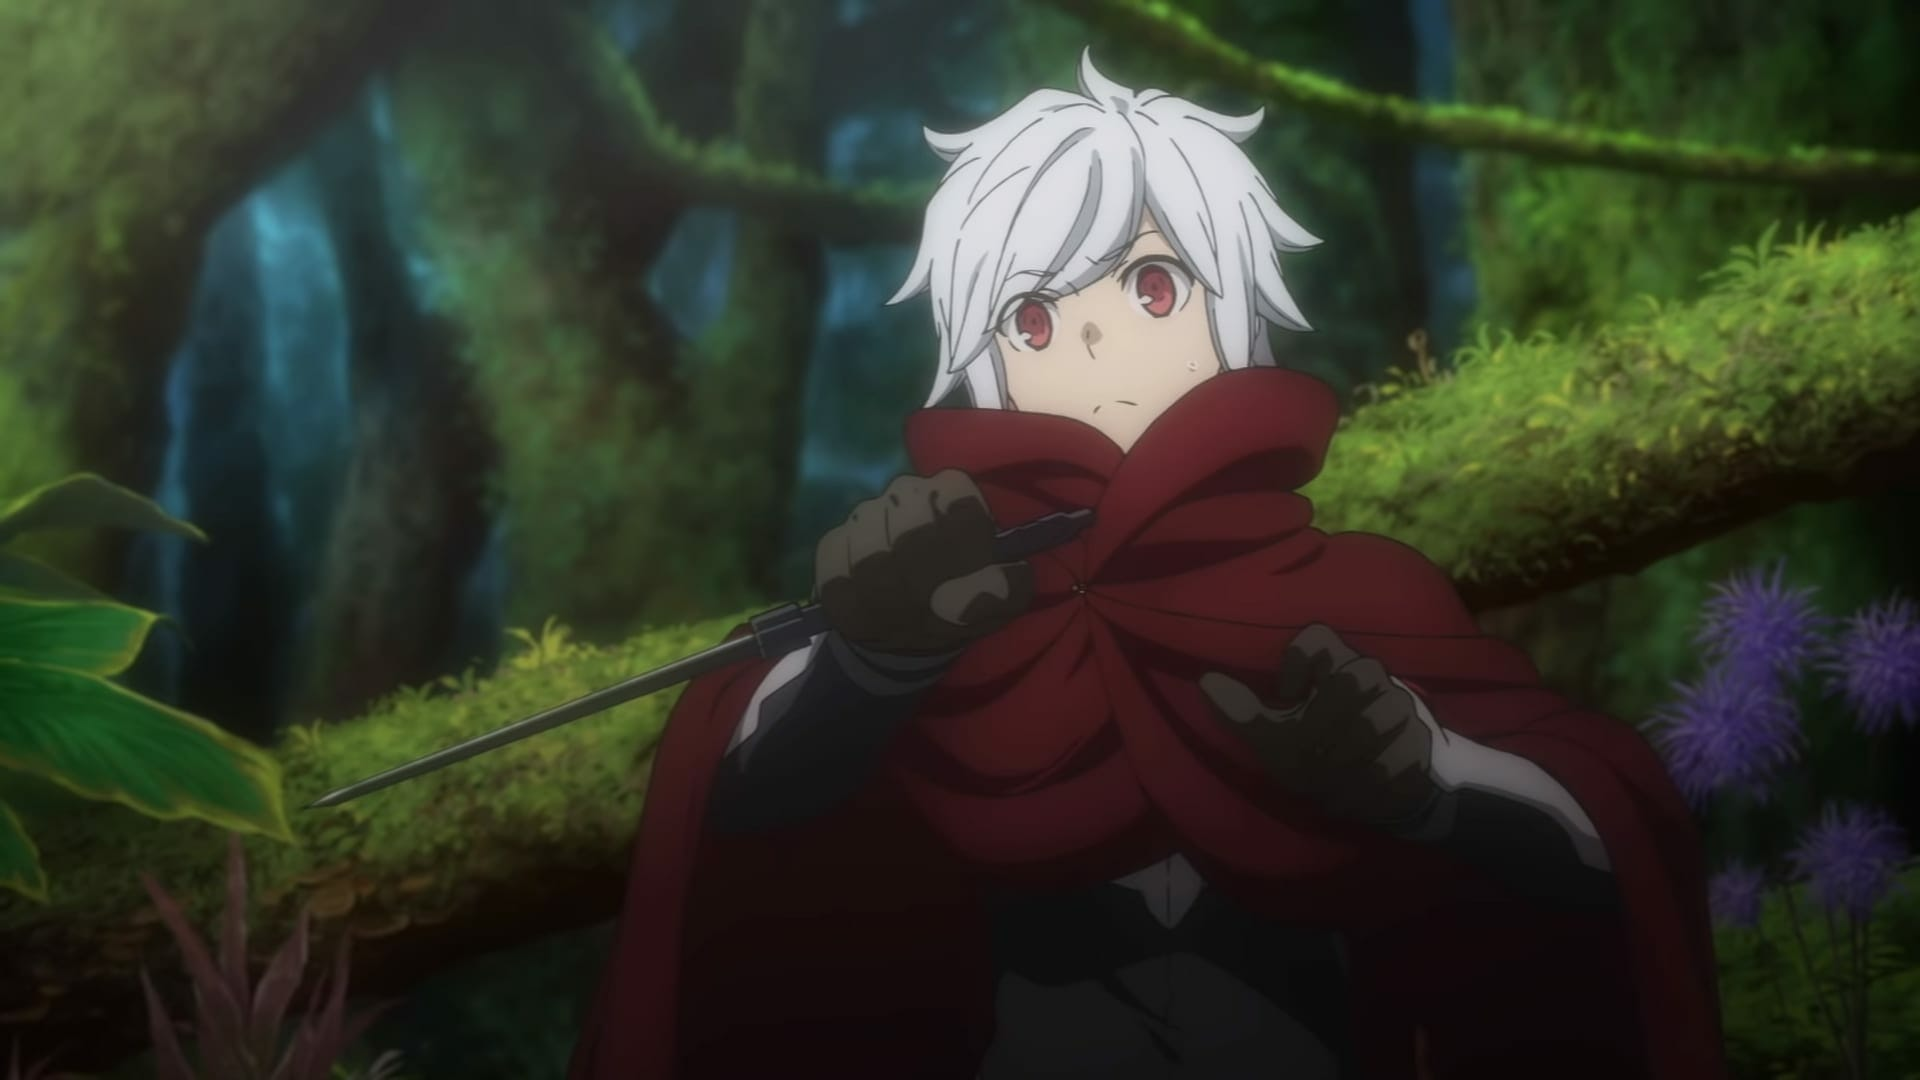 Danmachi season 3 anime